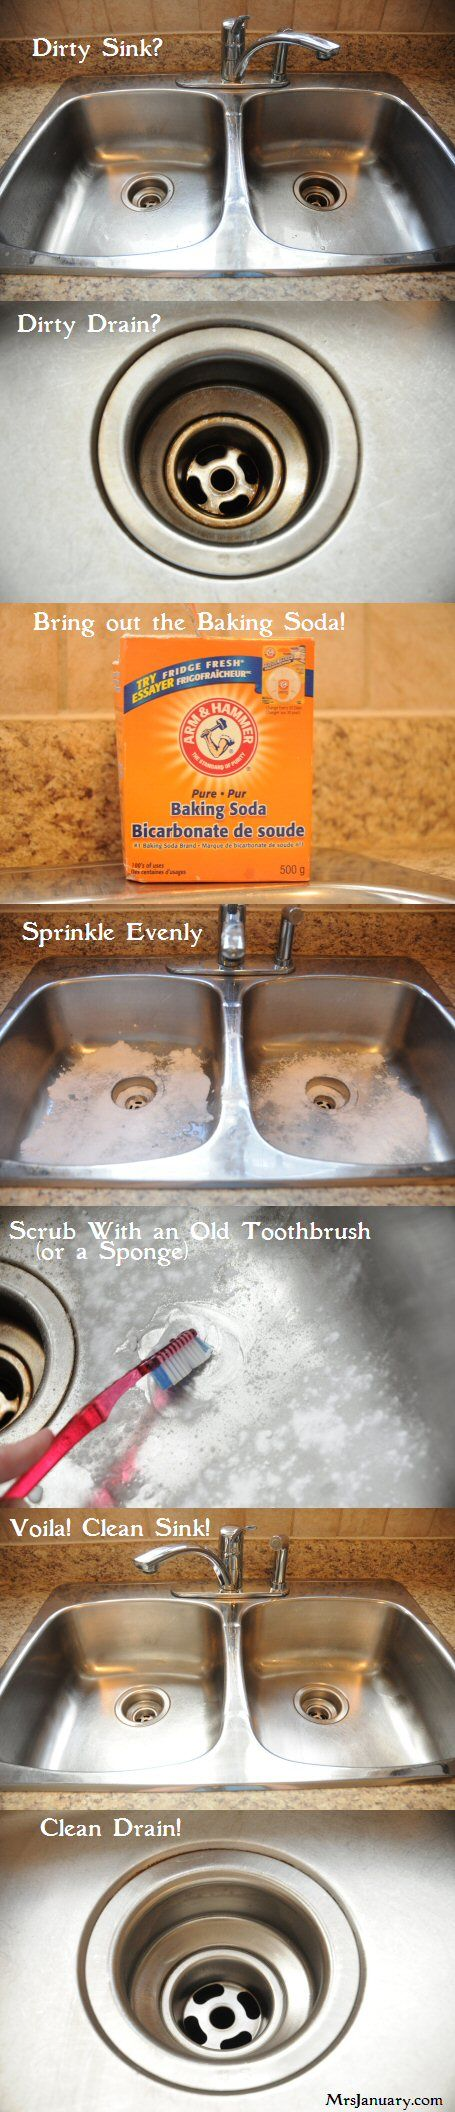 how to use baking soda to clean sink